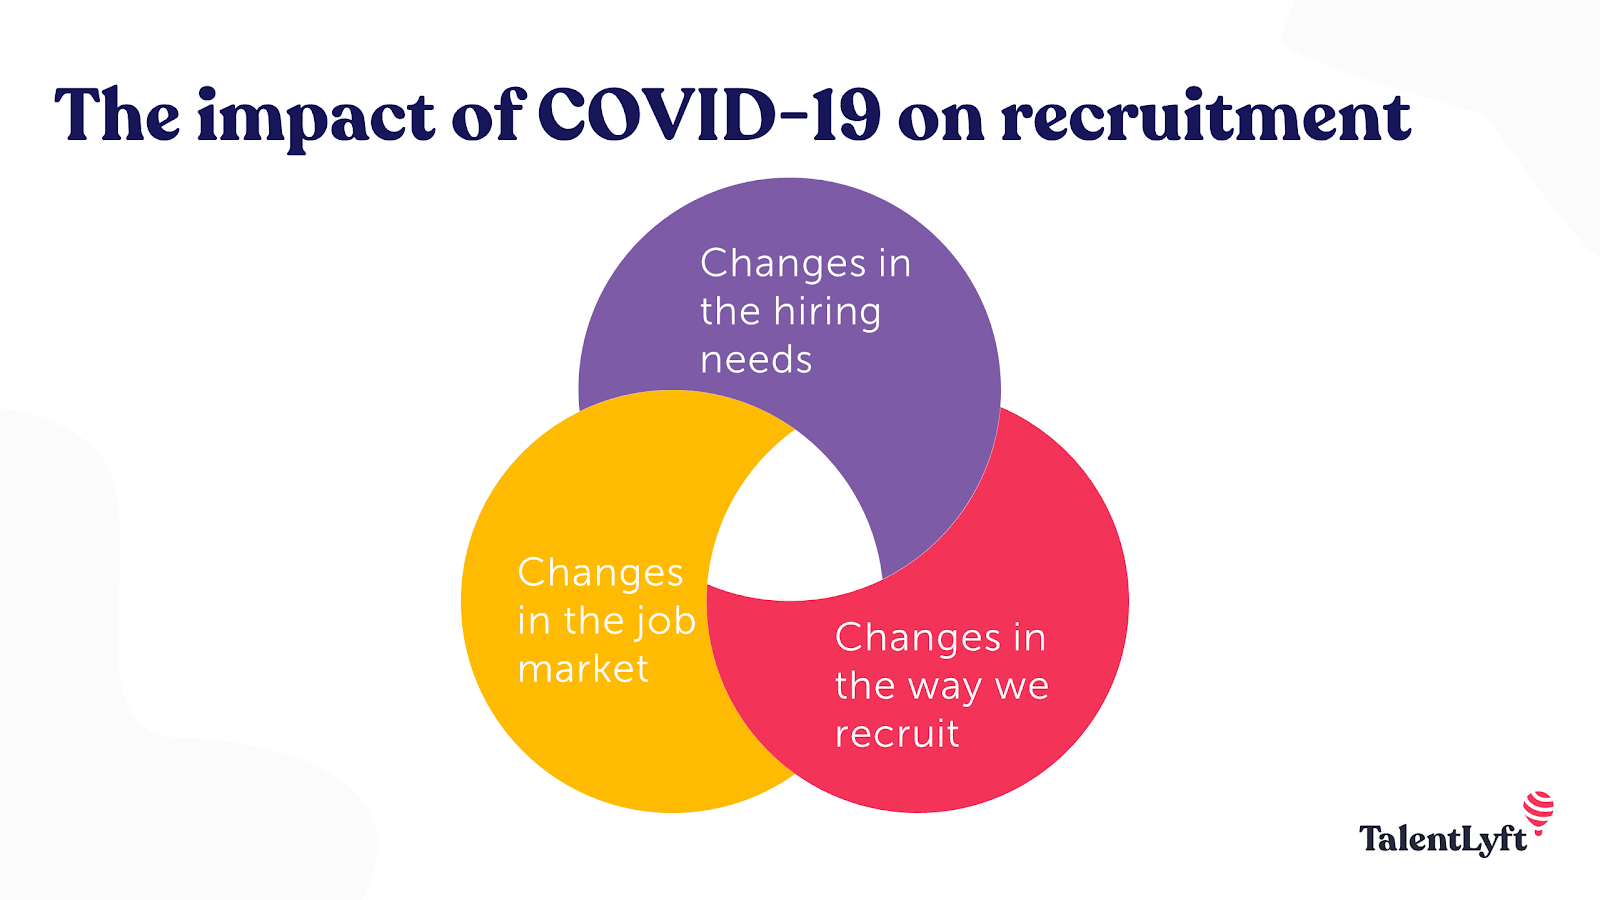 How did COVID-19 change recruitment